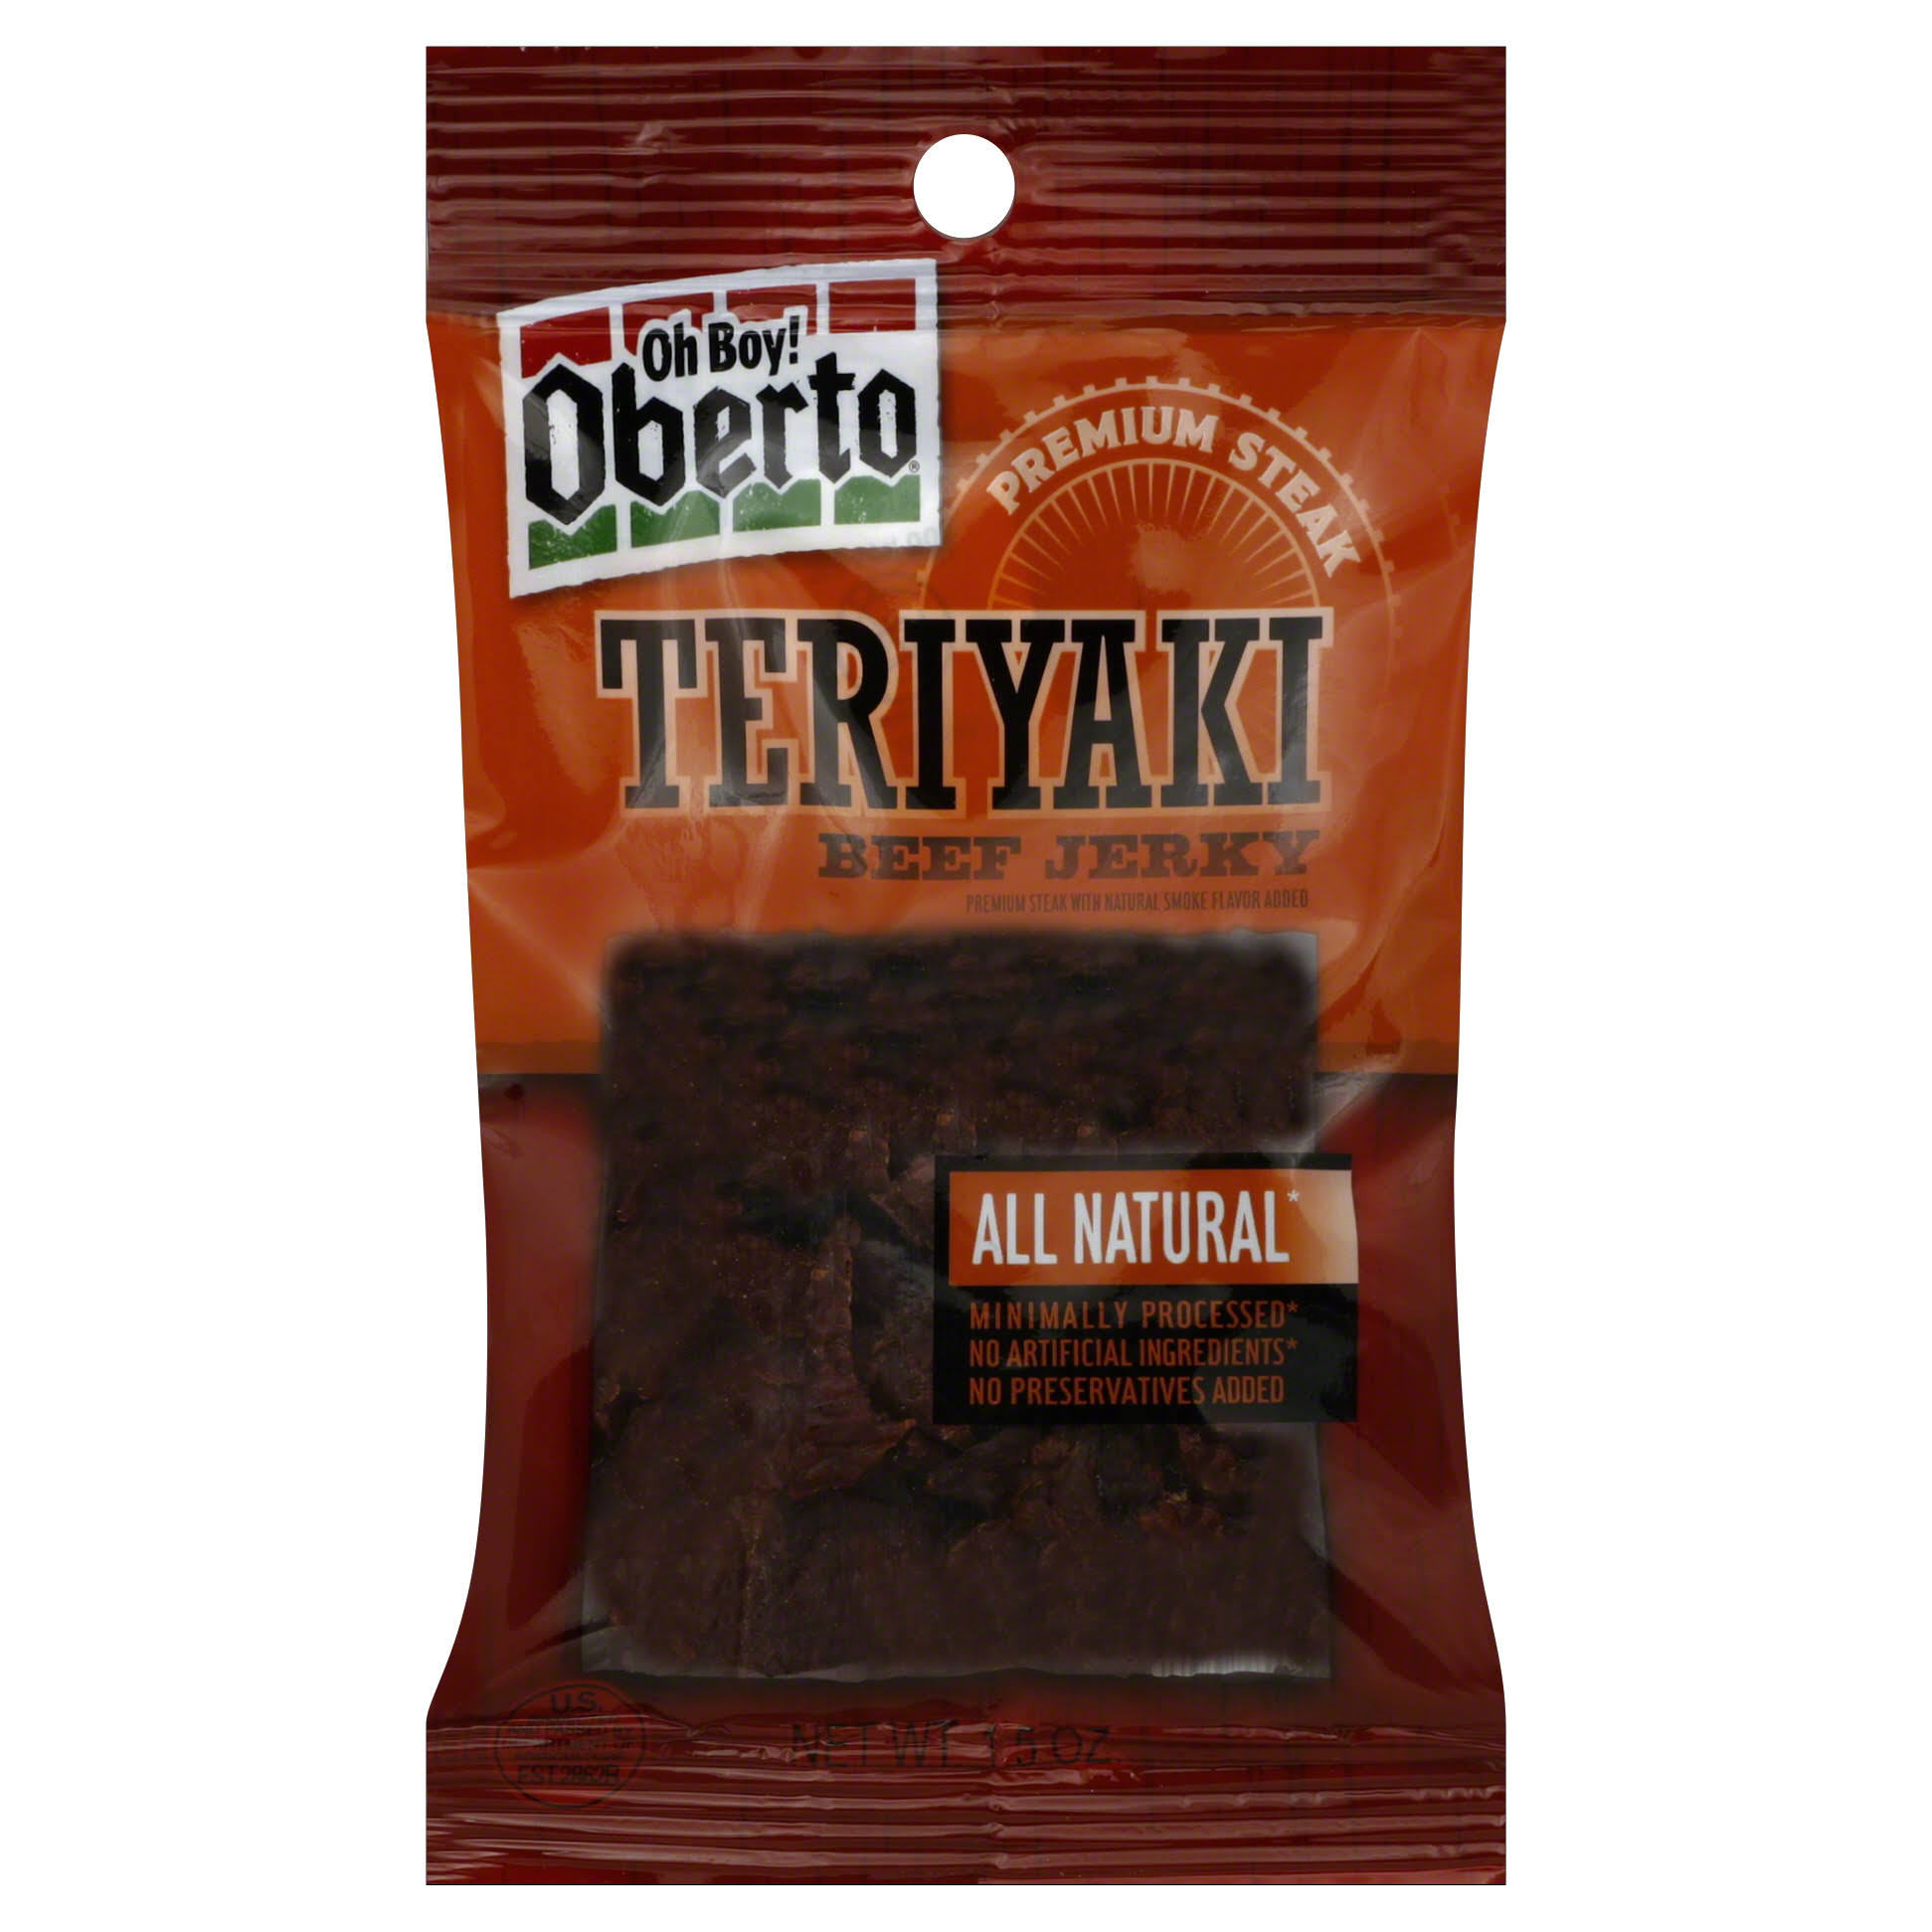 Oberto All Natural Beef Jerky - Teriyaki